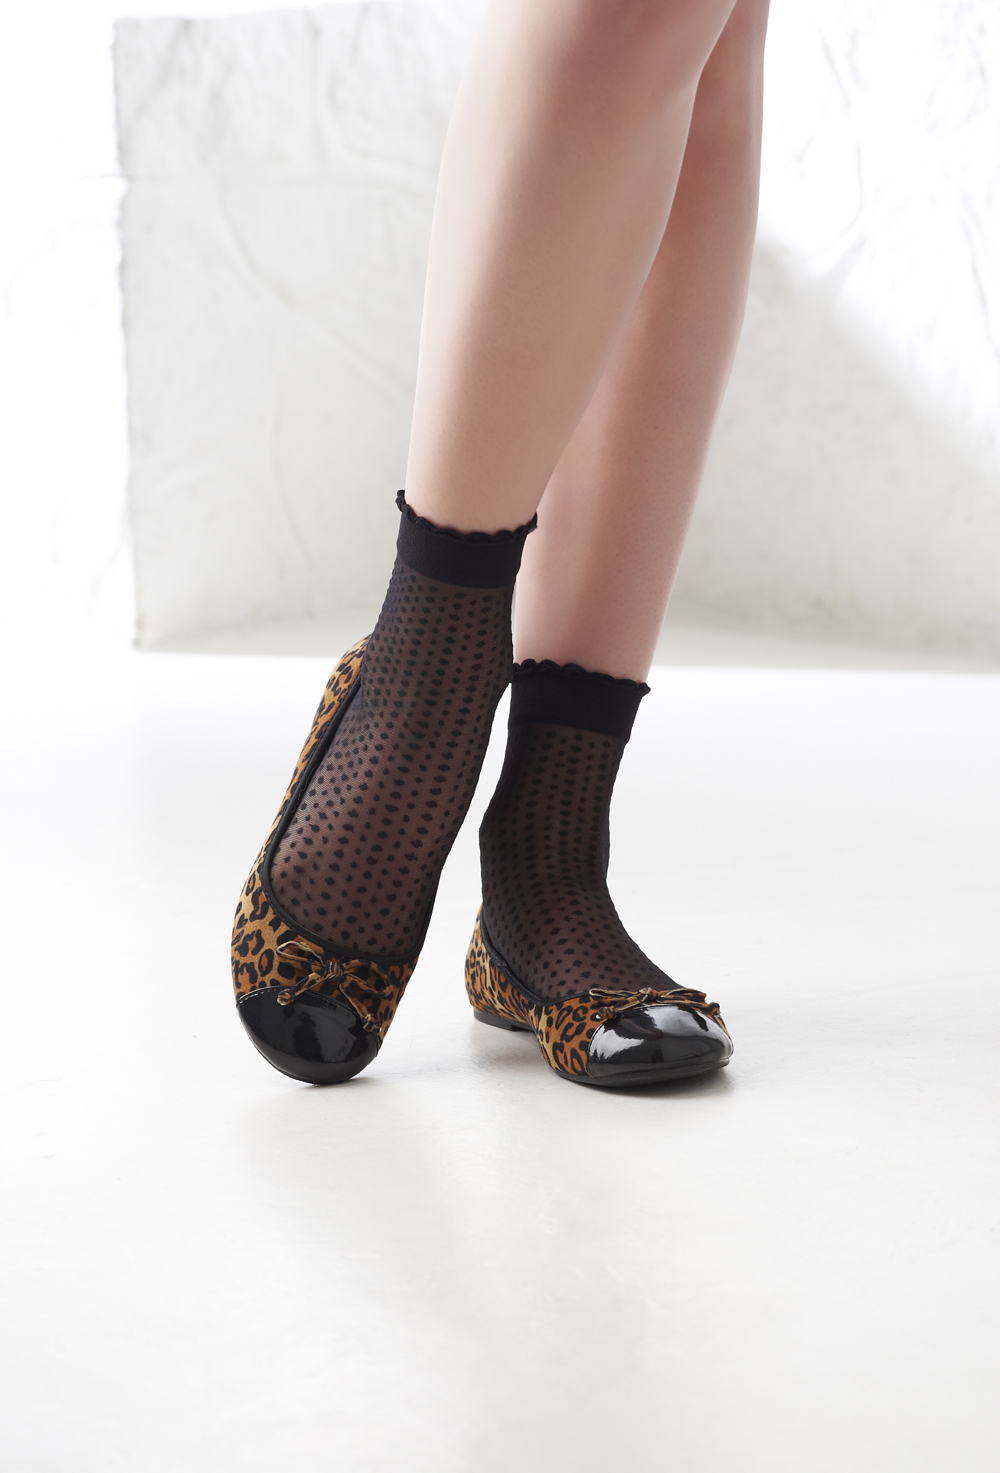 3pp Sheer Patterned Ankle Highs